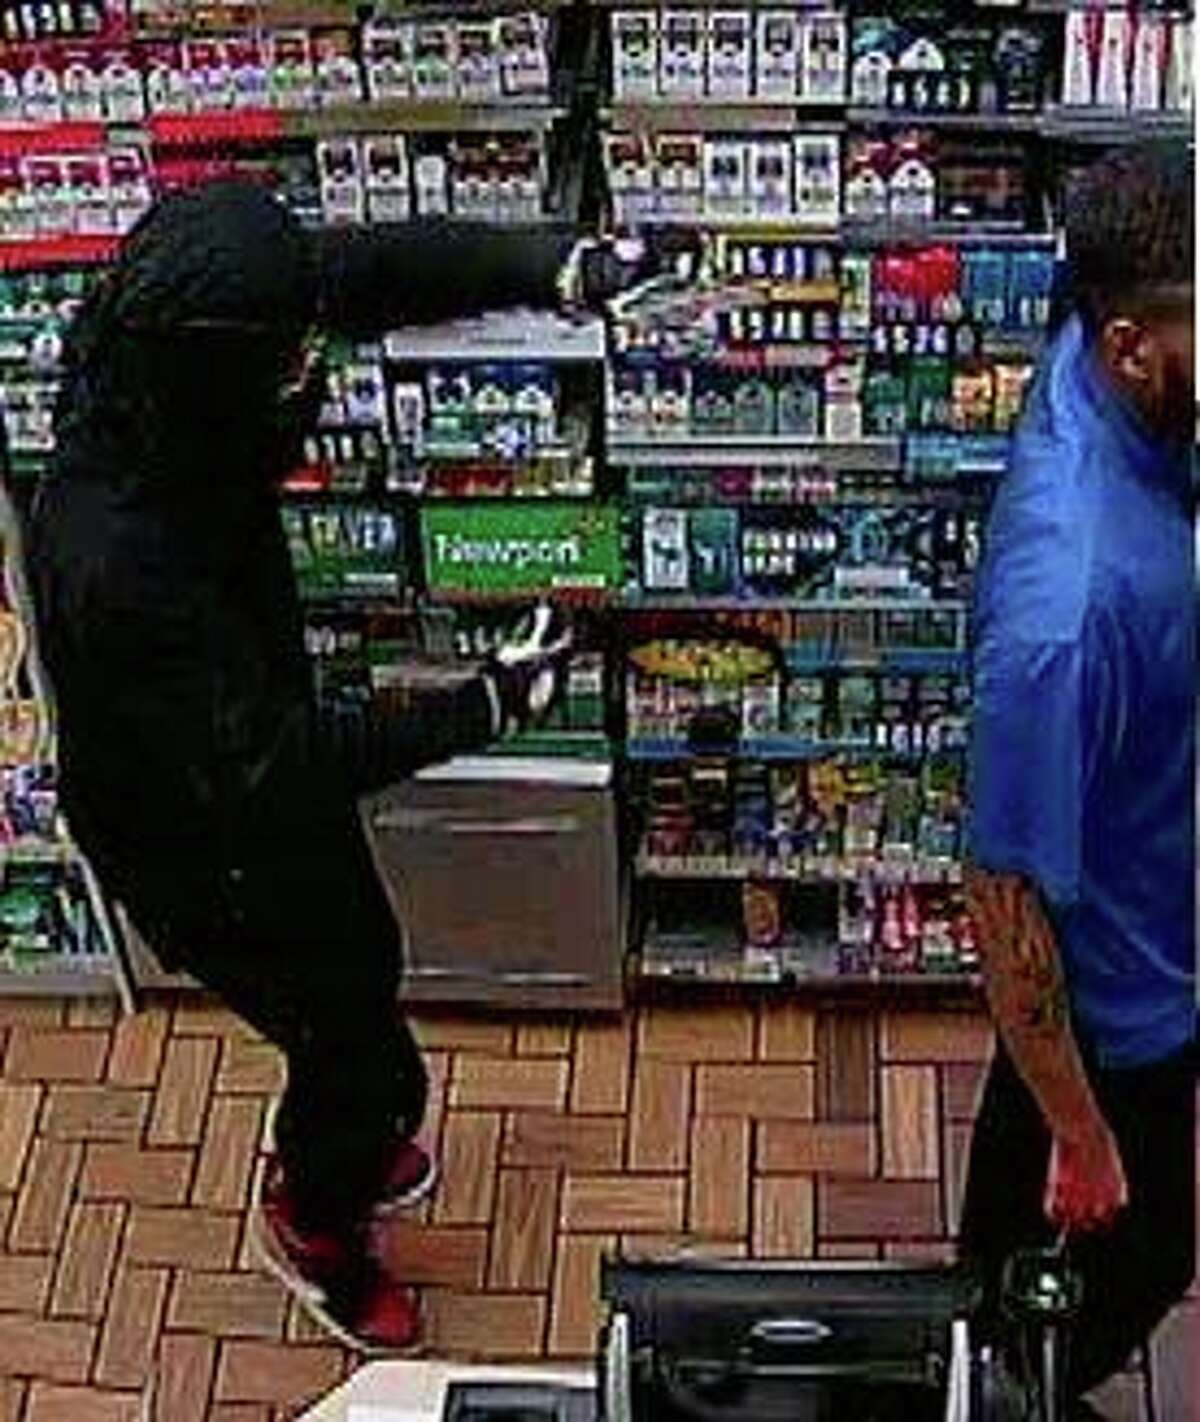 Fort Bend County sheriff's deputies are searching for a pair of masked robbers who held up a convenience store at gunpoint. The two men struck shortly after 11:30 p.m. on April 20, 2017 at a Valero store in the 14100 block of Bissonnet.